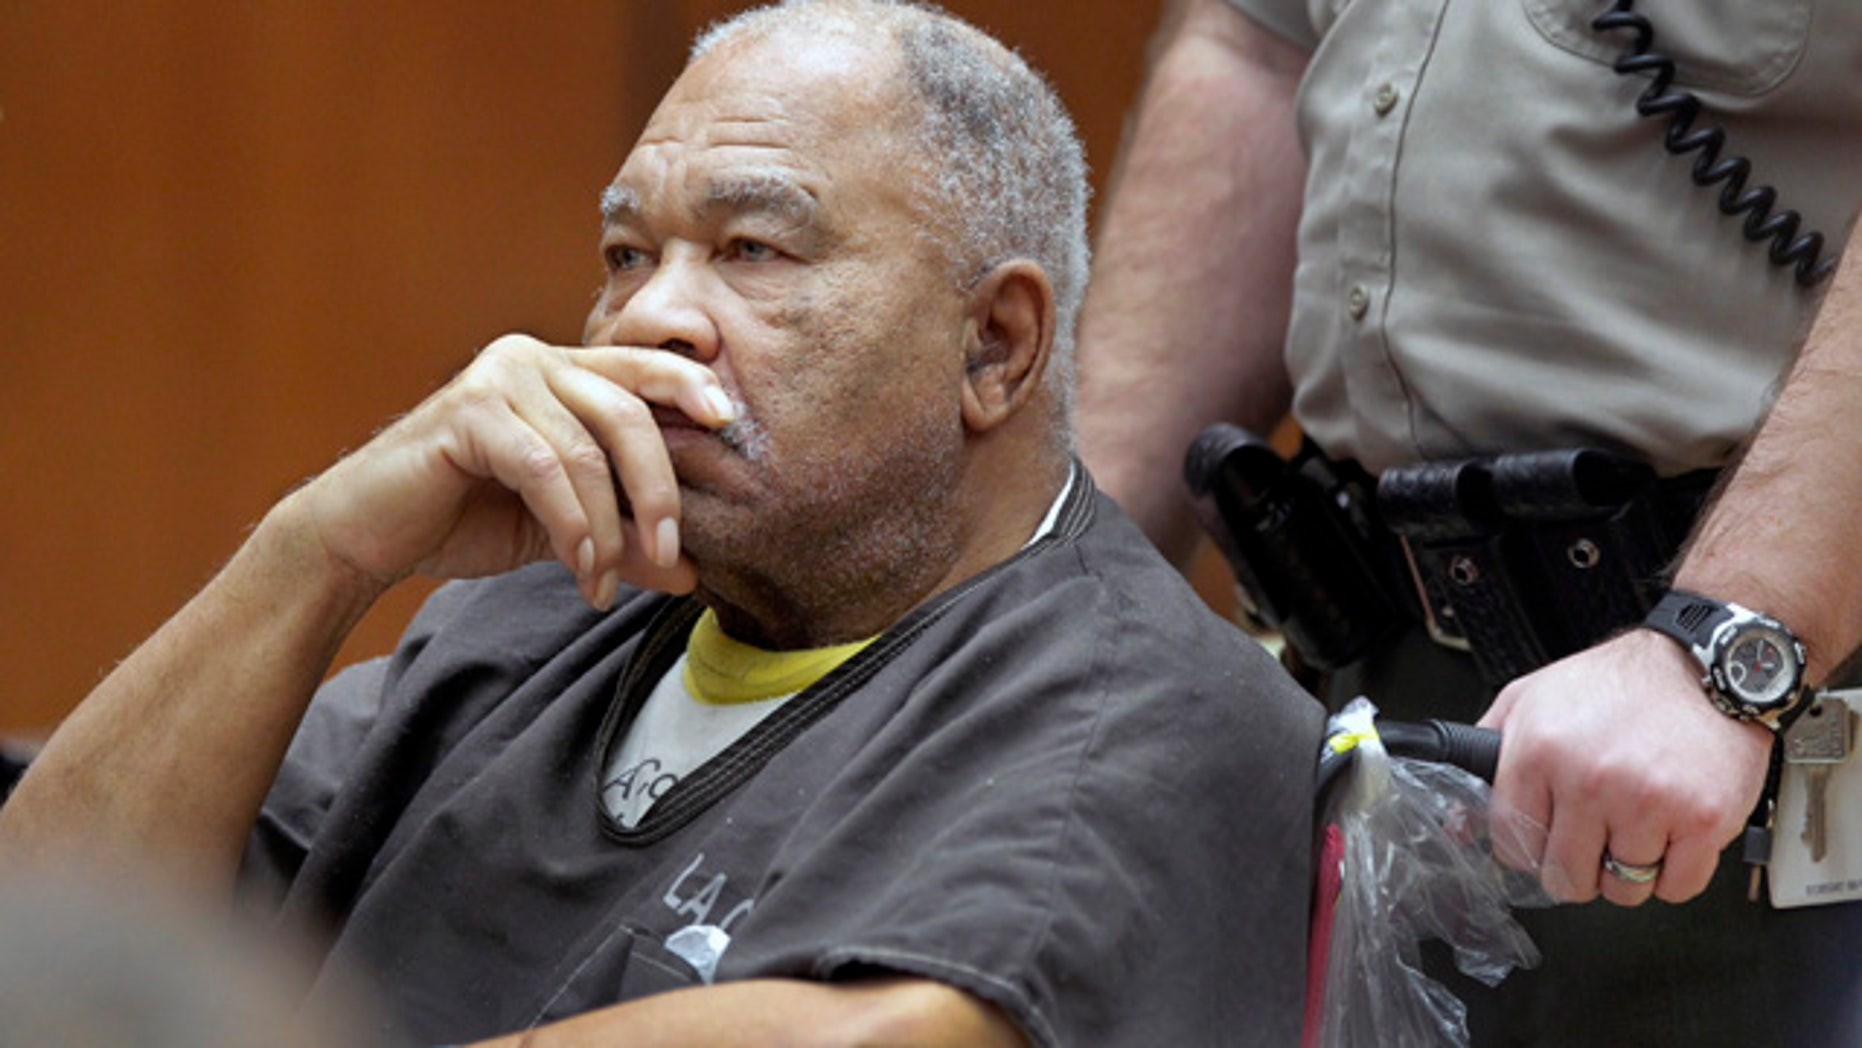 In this March 4, 2013, file photo, Samuel Little appears at Superior Court in Los Angeles. (AP Photo/Damian Dovarganes,File)